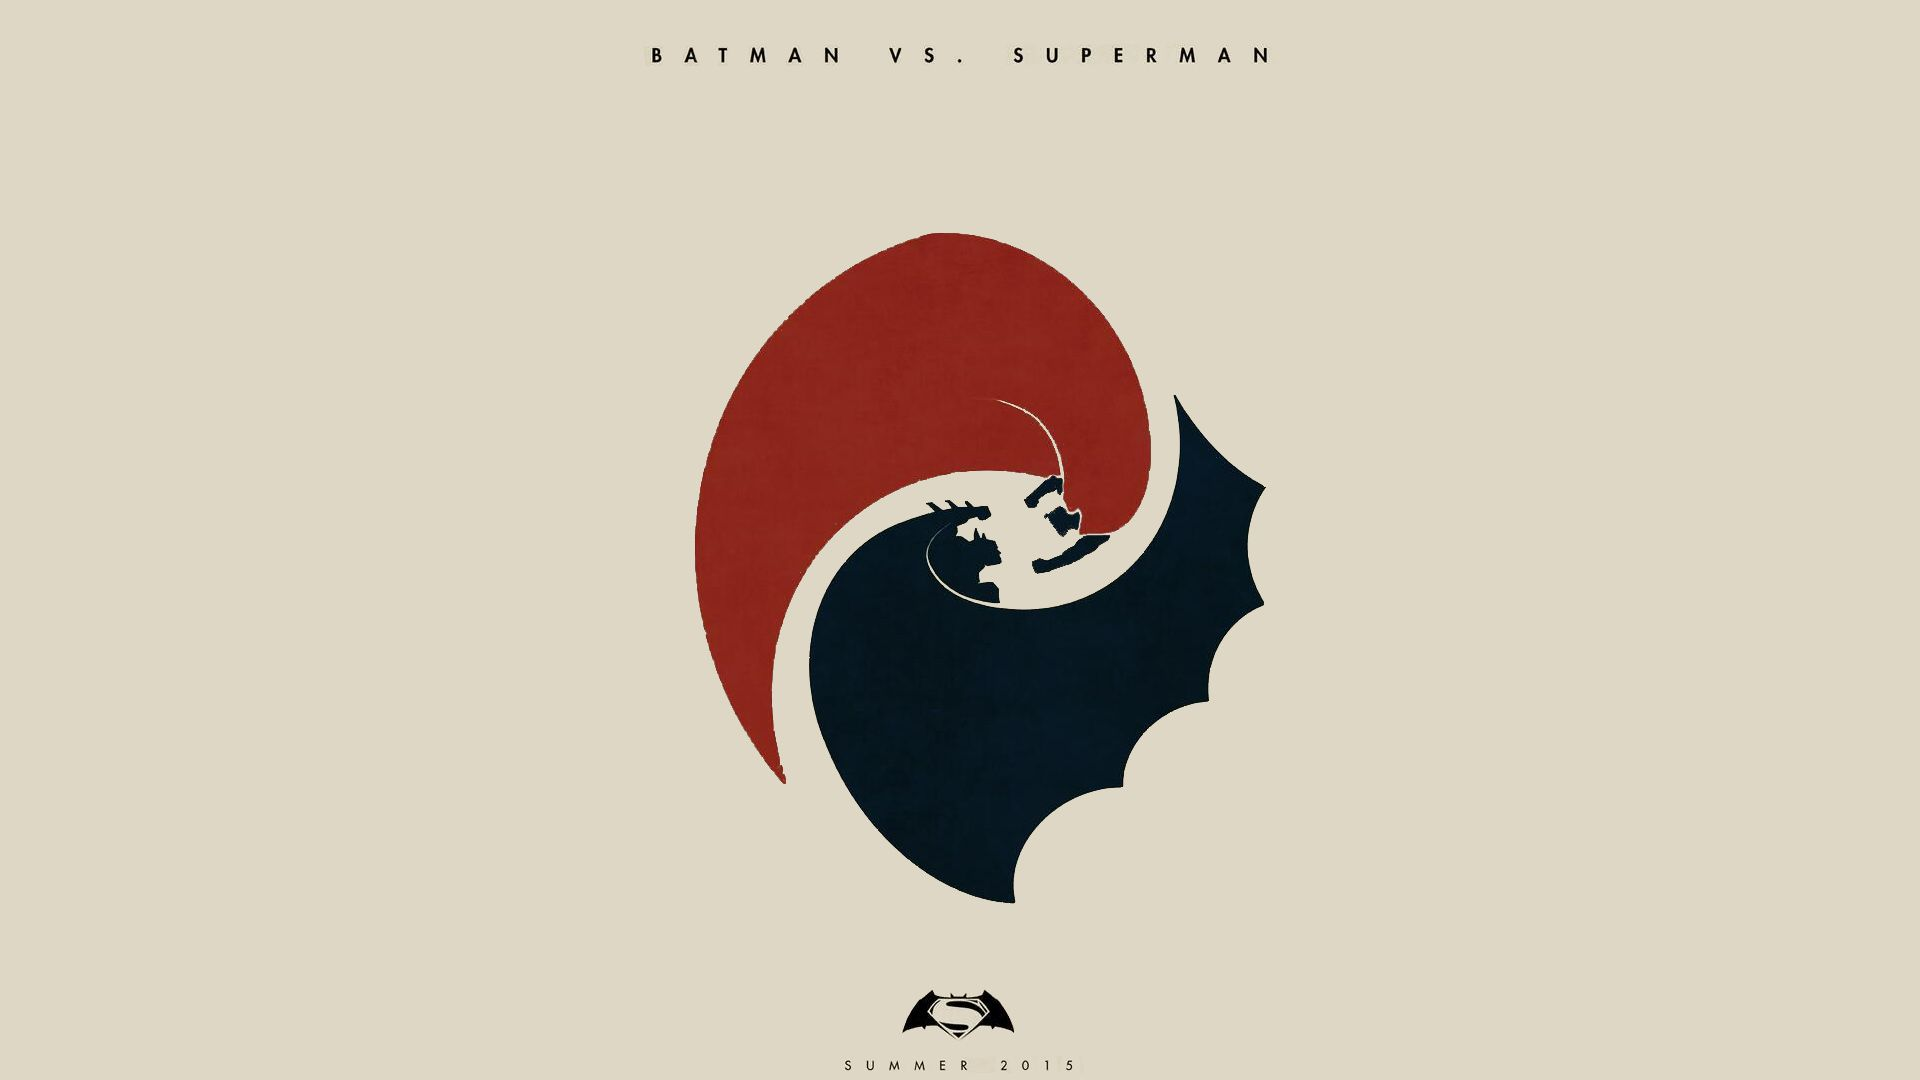 Batman Vs Superman HD Wallpaper Recommended To Post Here From